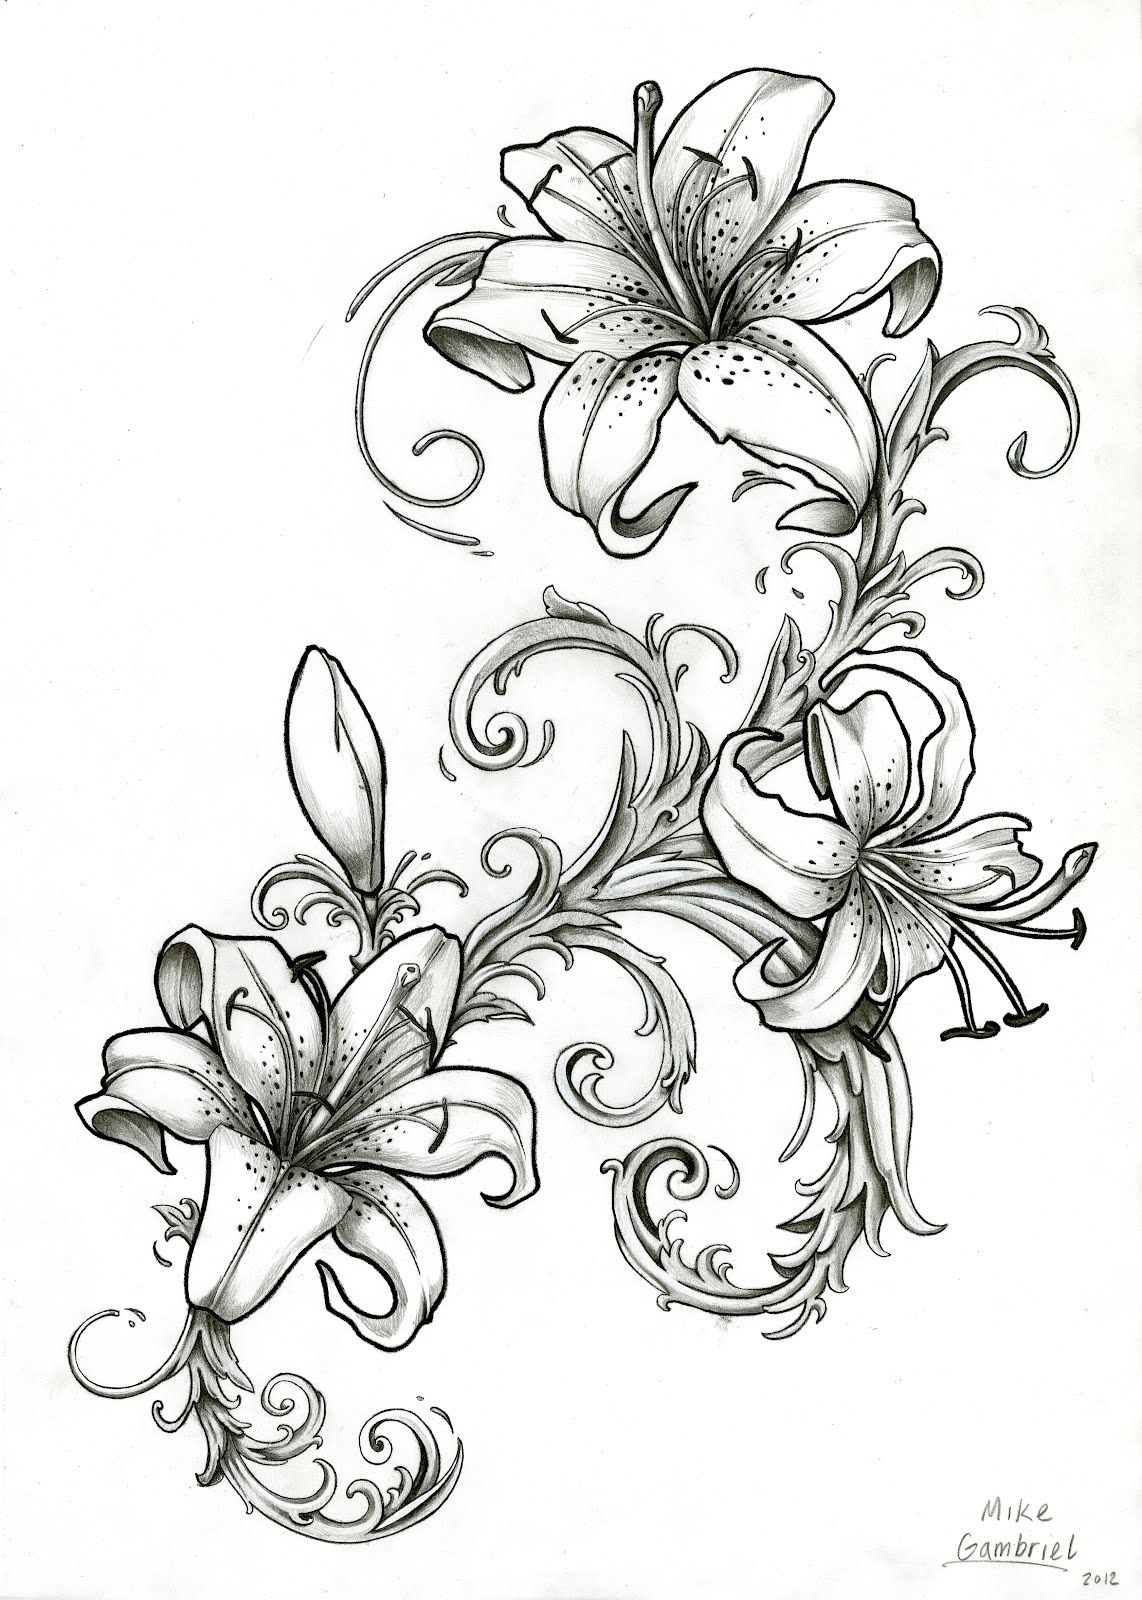 Pin von misty lang auf things to draw pinterest tattoo ideen tattoo vorlagen und lilien - Orchideen tattoo vorlage ...